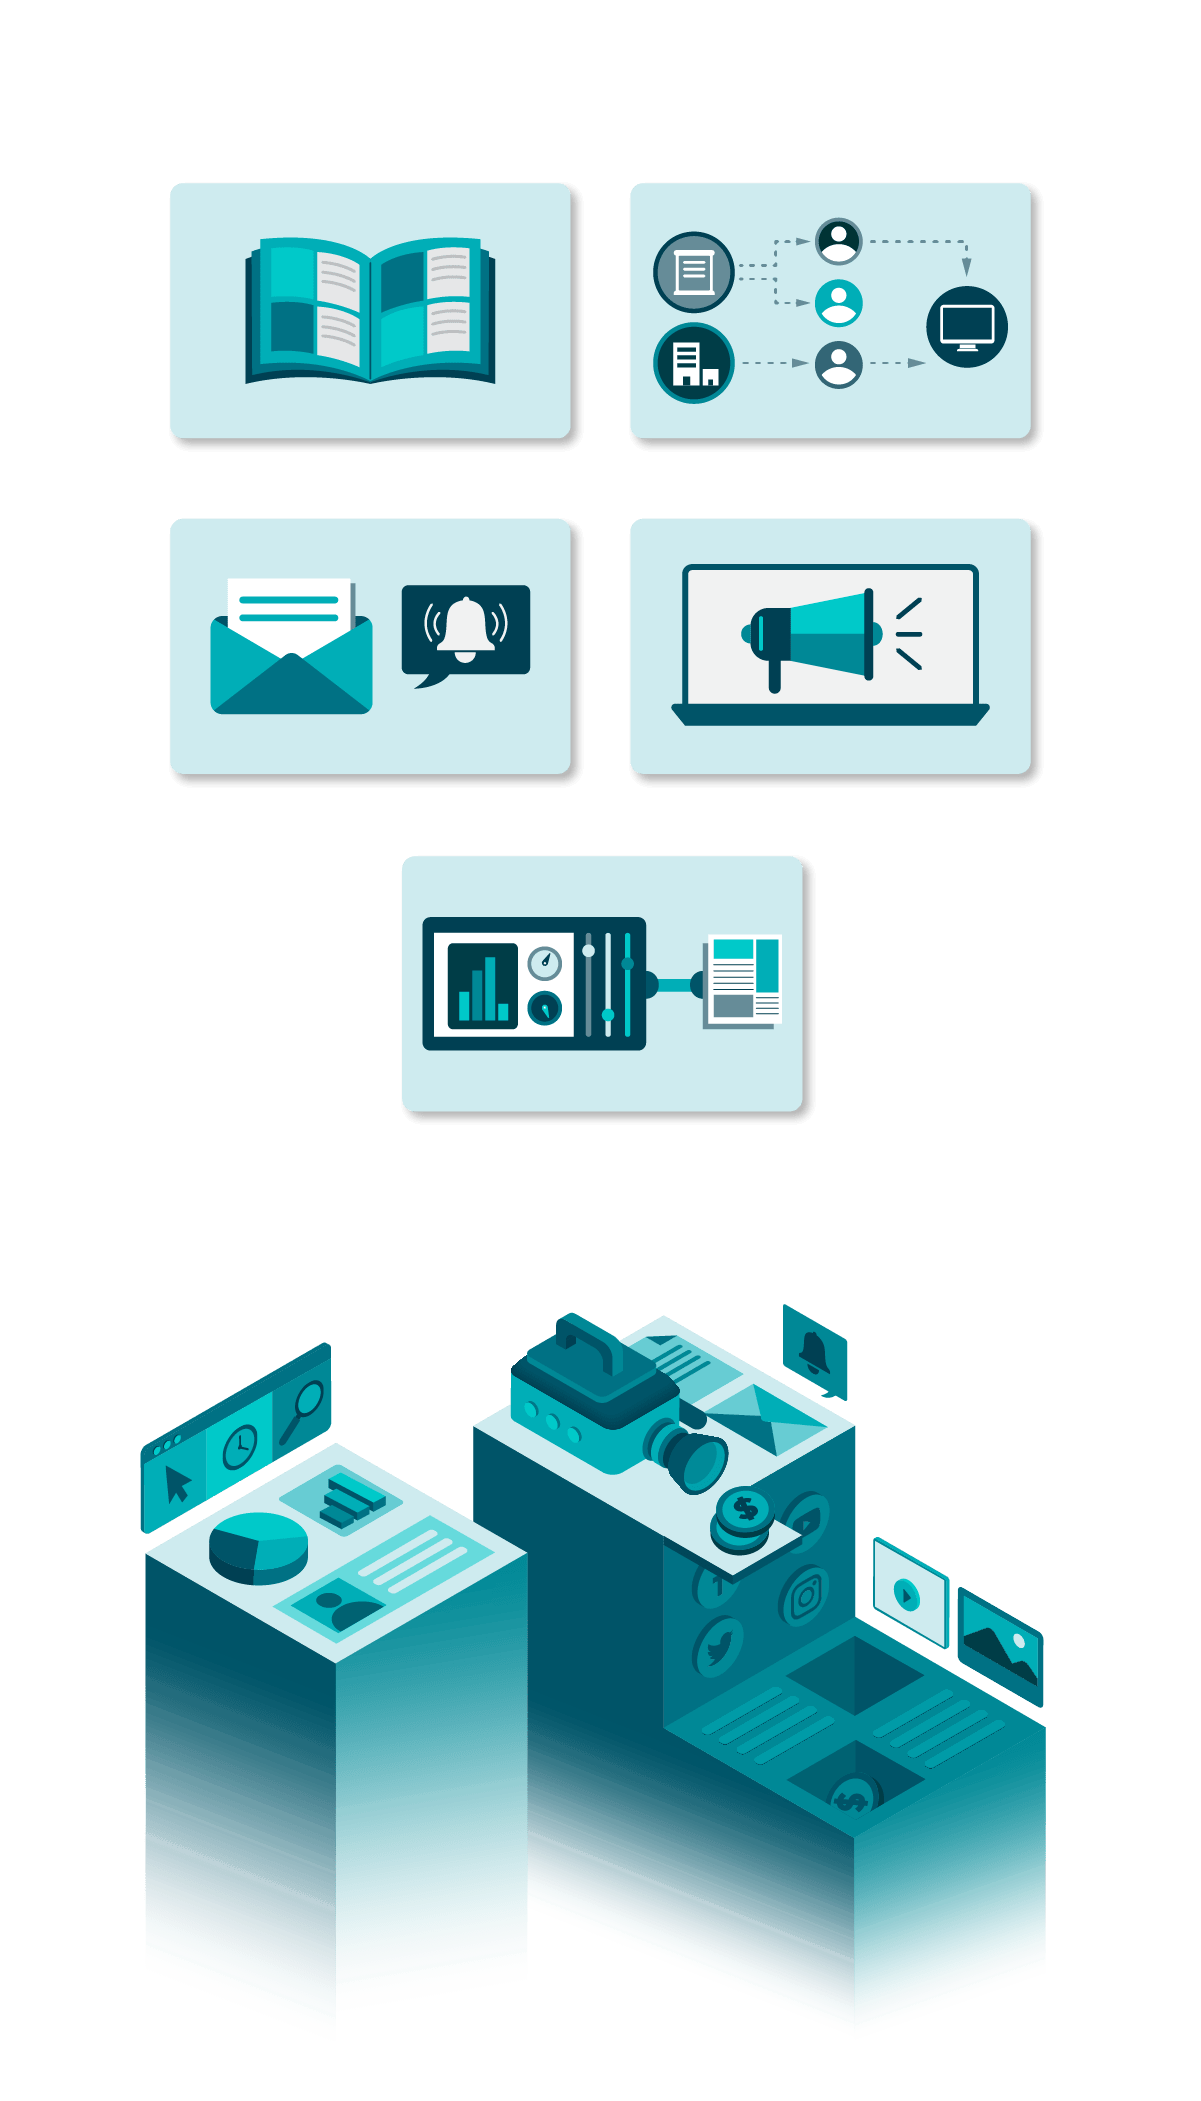 state of proposals digital advertising isometric